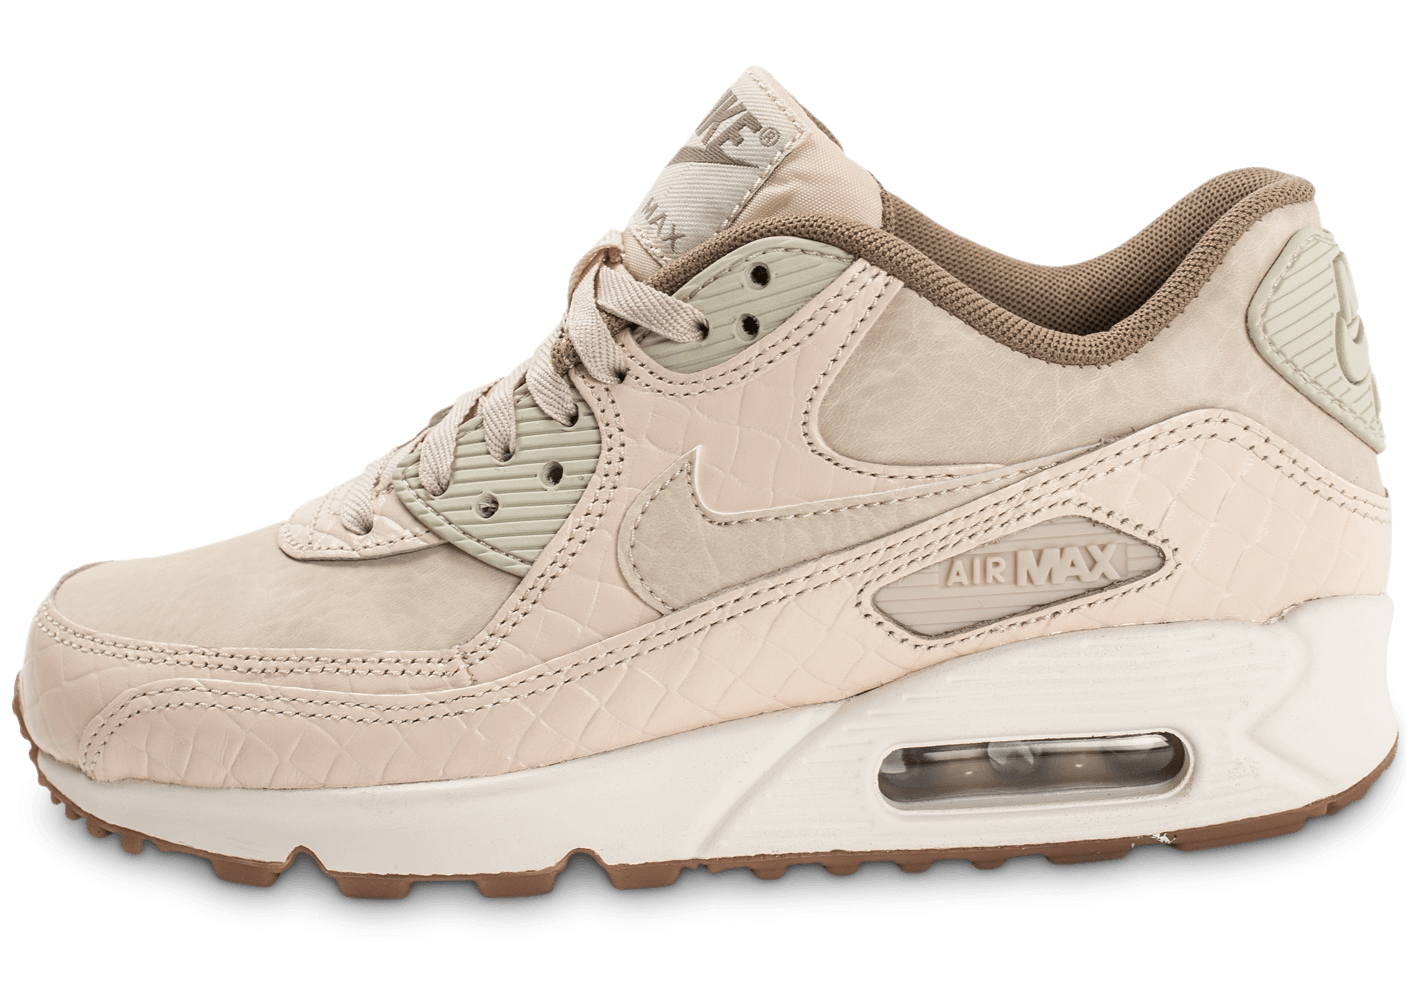 sneakers for cheap af526 d6d83 ... free shipping nike air max 90 premium beige chaussures air baskets  femme chausport 73ce2b 707d1 75fdc ...